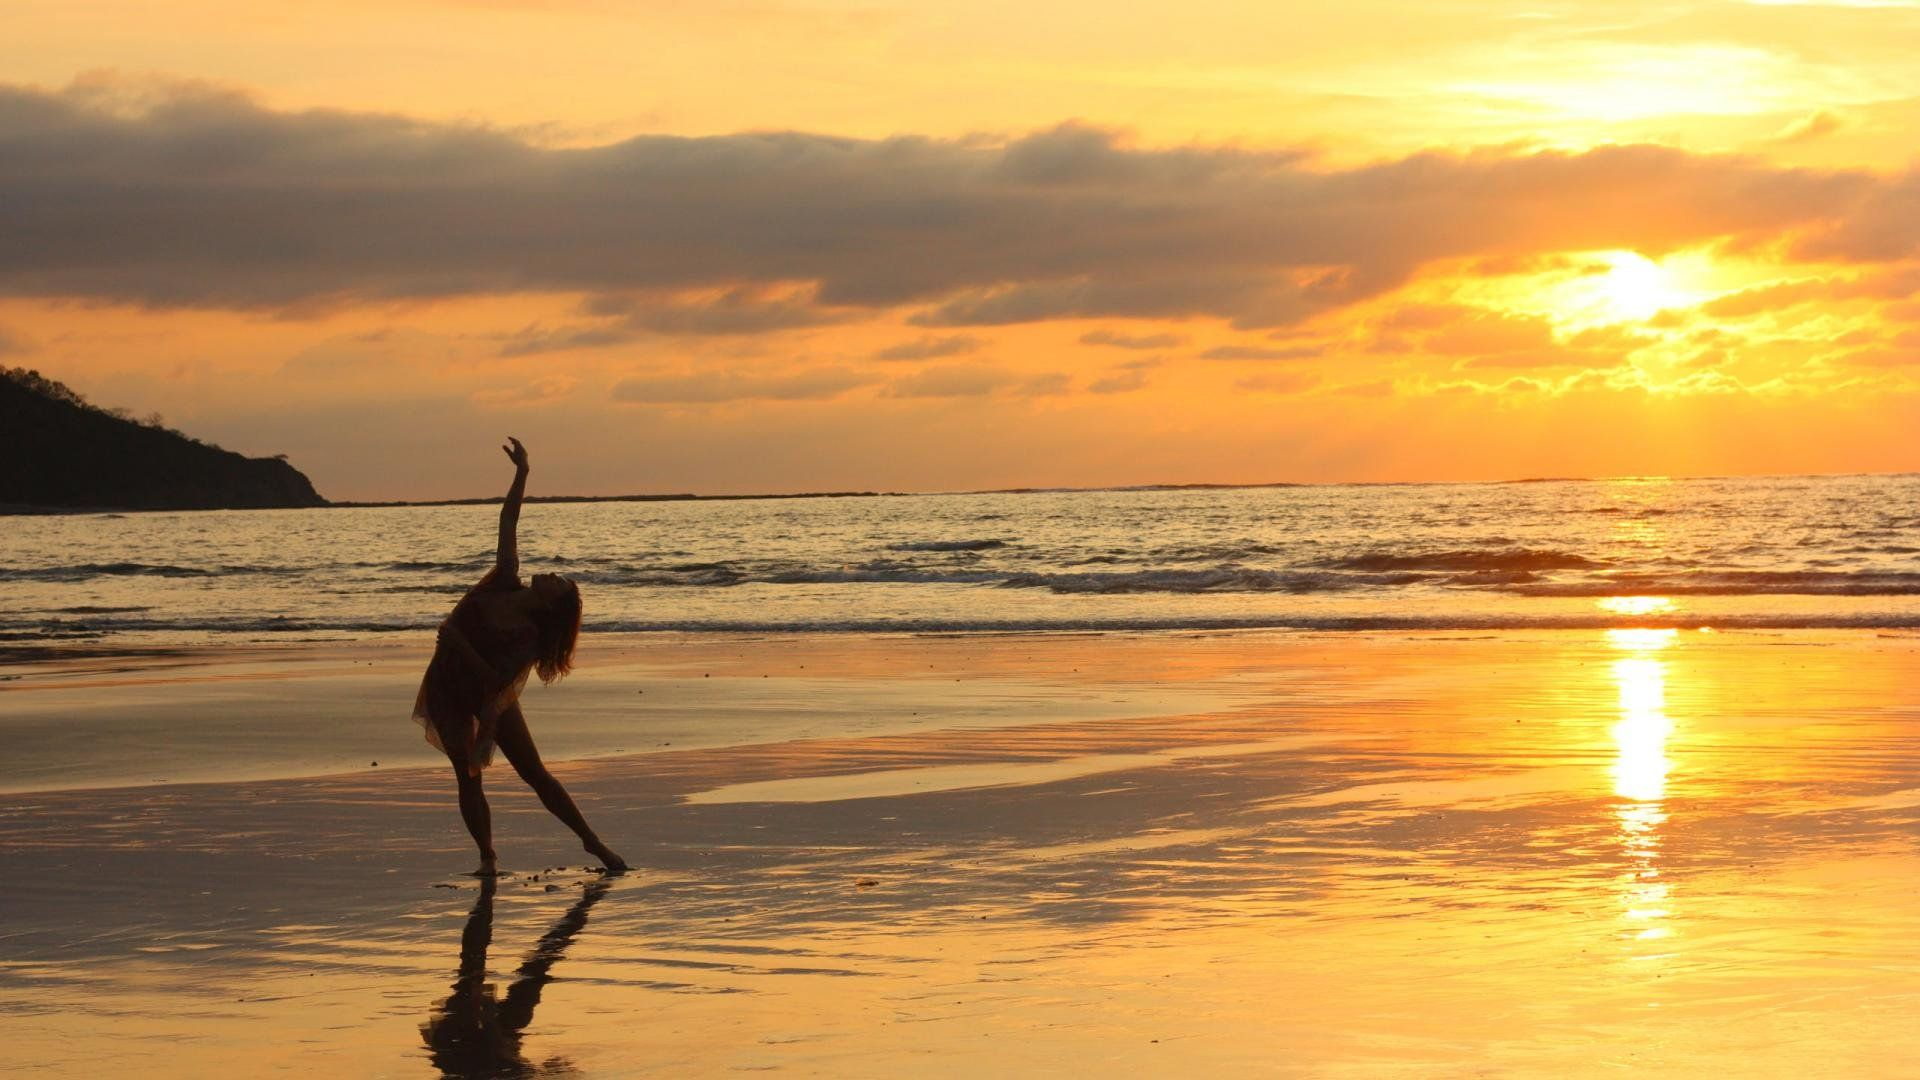 sunsets at the beach are unbeatable. here's a good reason why you